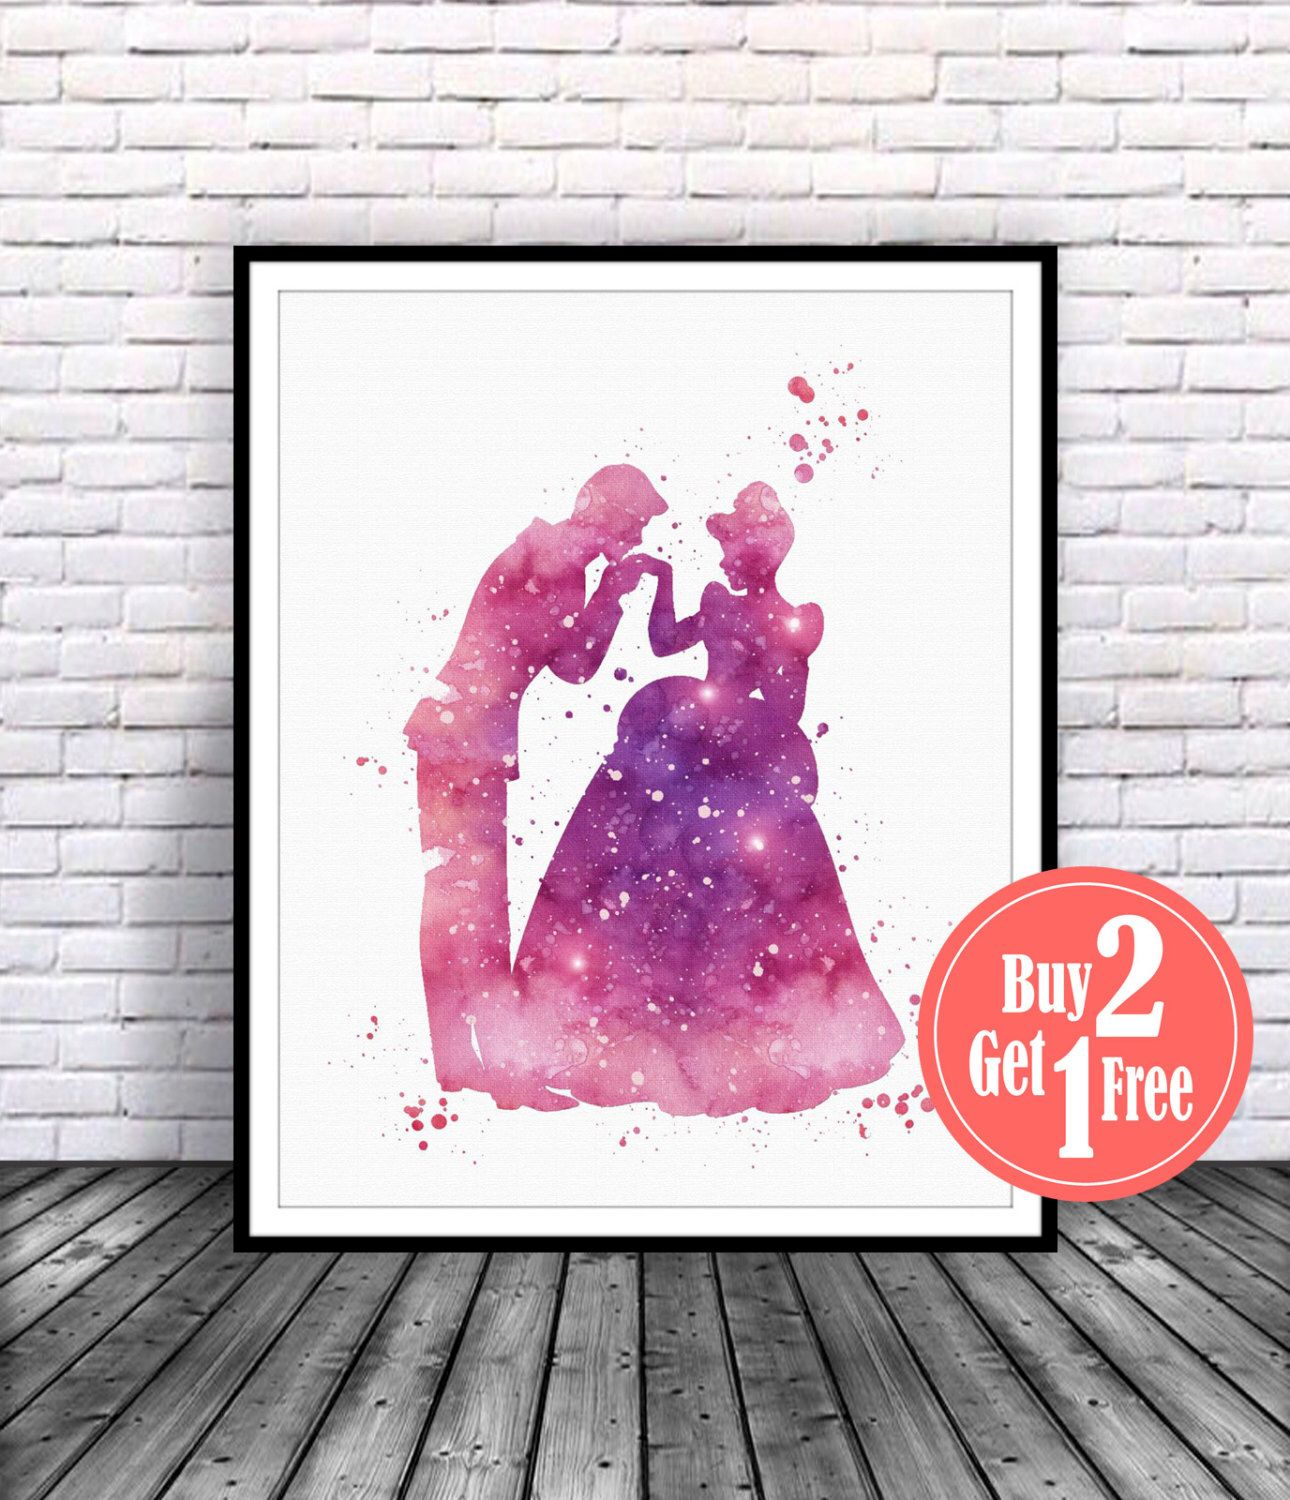 Cinderella print, Prince Charming, cindrella Illustration, cinderella decor, cinderella art, cinderella wall art, disney watercolor by CarmaZoe on Etsy https://www.etsy.com/ca/listing/241198931/cinderella-print-prince-charming